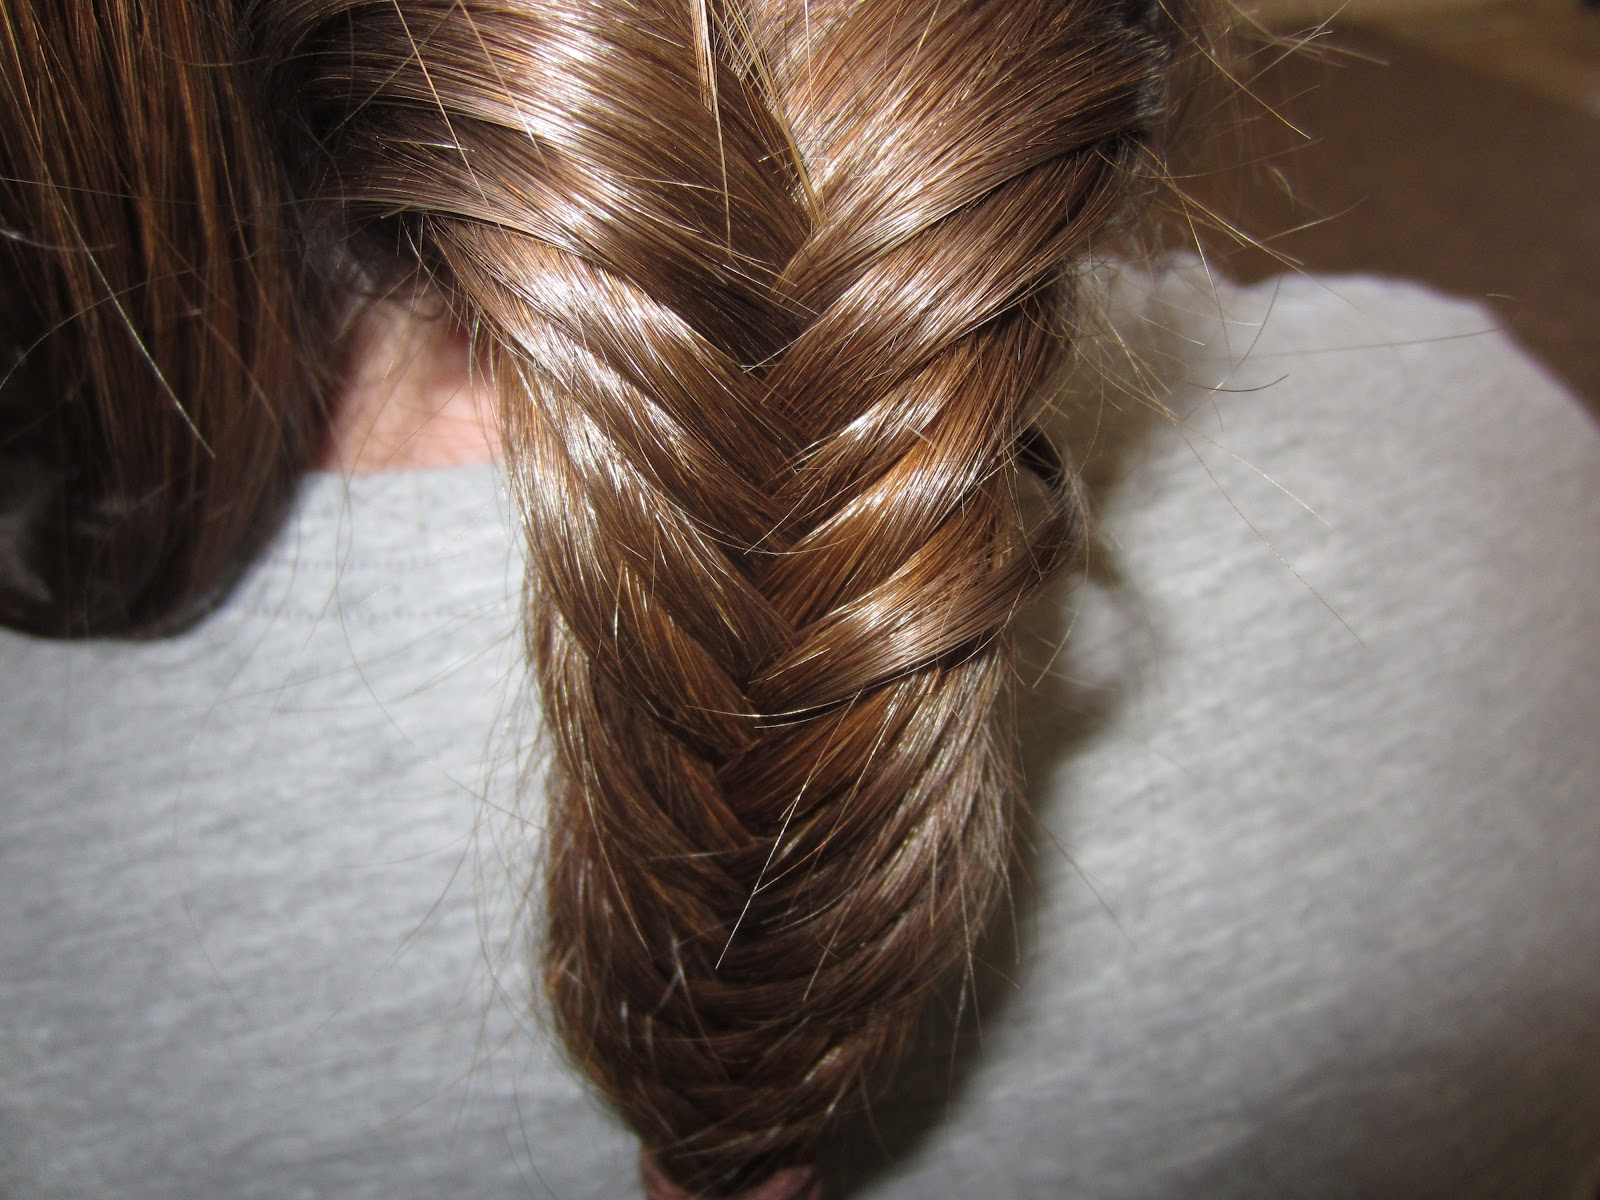 Hair Styles Different Braids: 2 SISTERS HAIRSTYLES: Different Kinds Of Braids